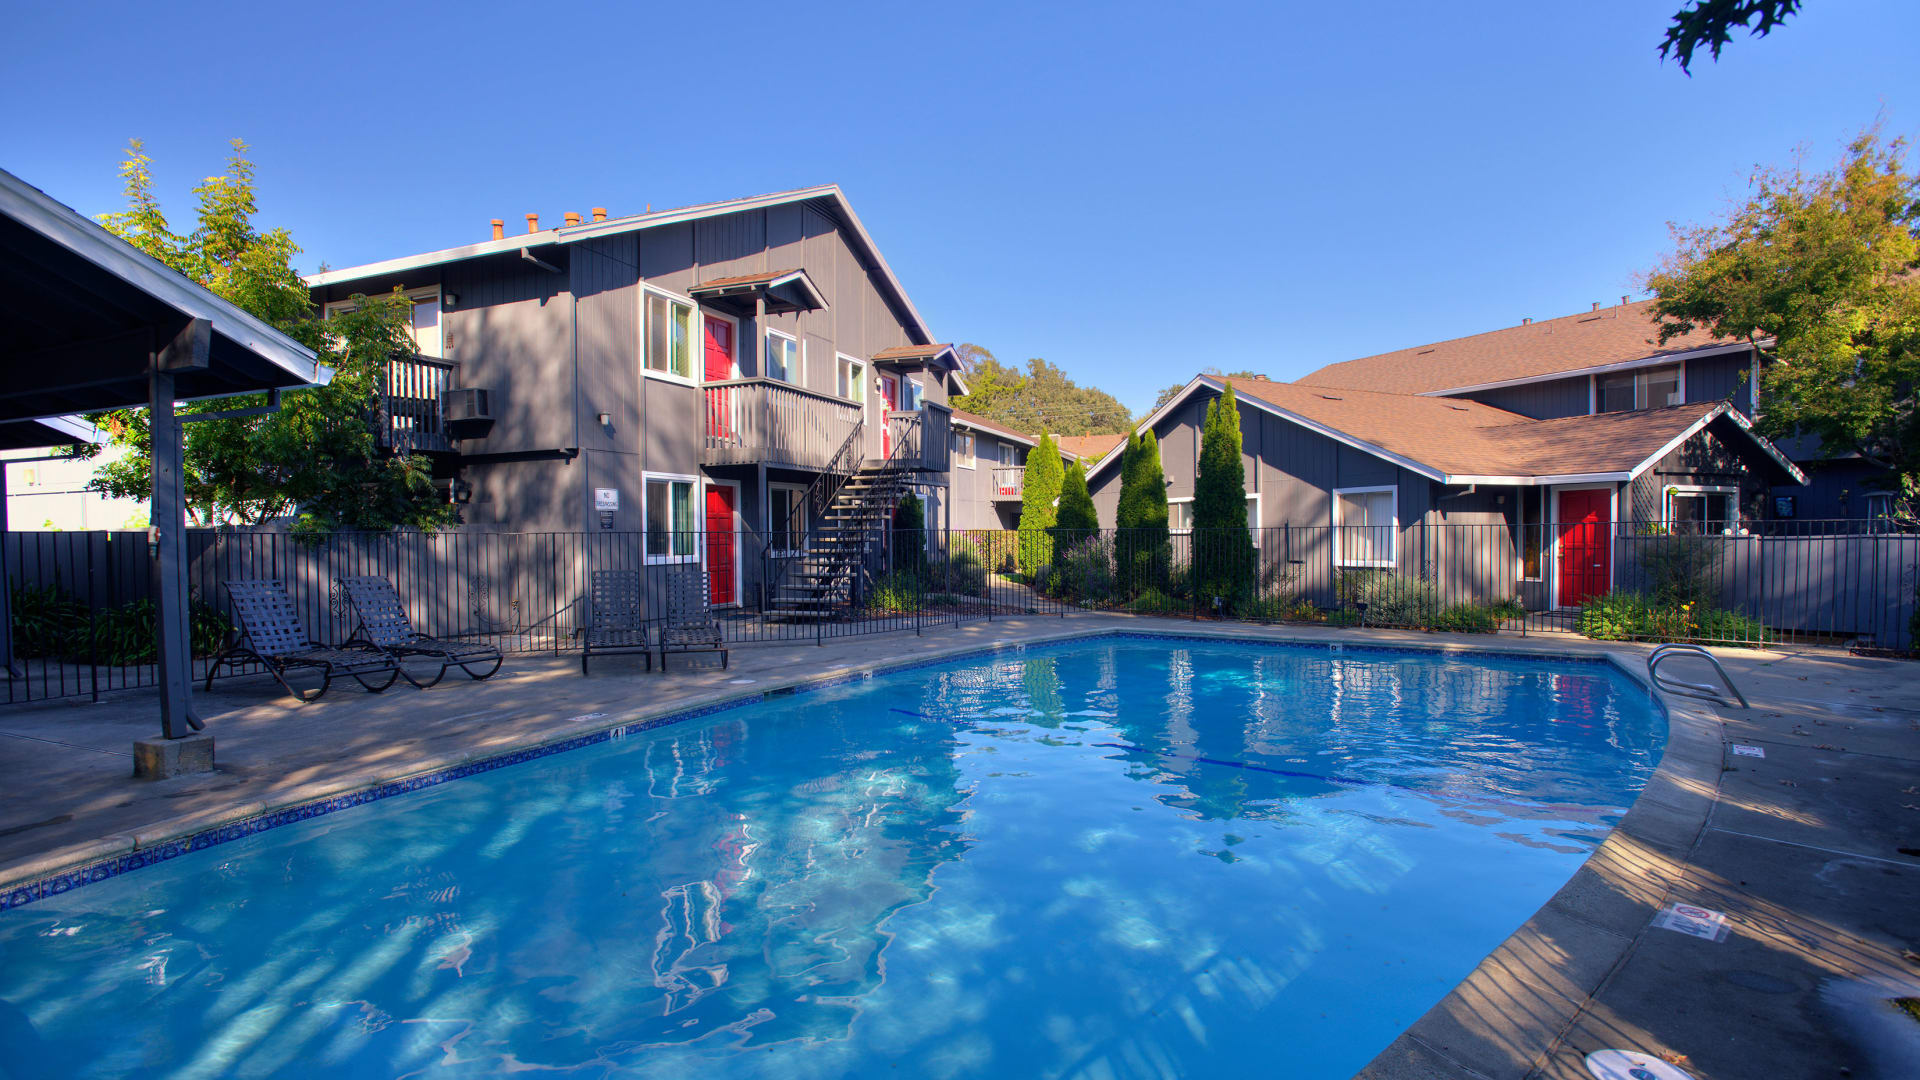 State-of-the-art swimming pool at Spring Lake Apartment Homes in Santa Rosa, California